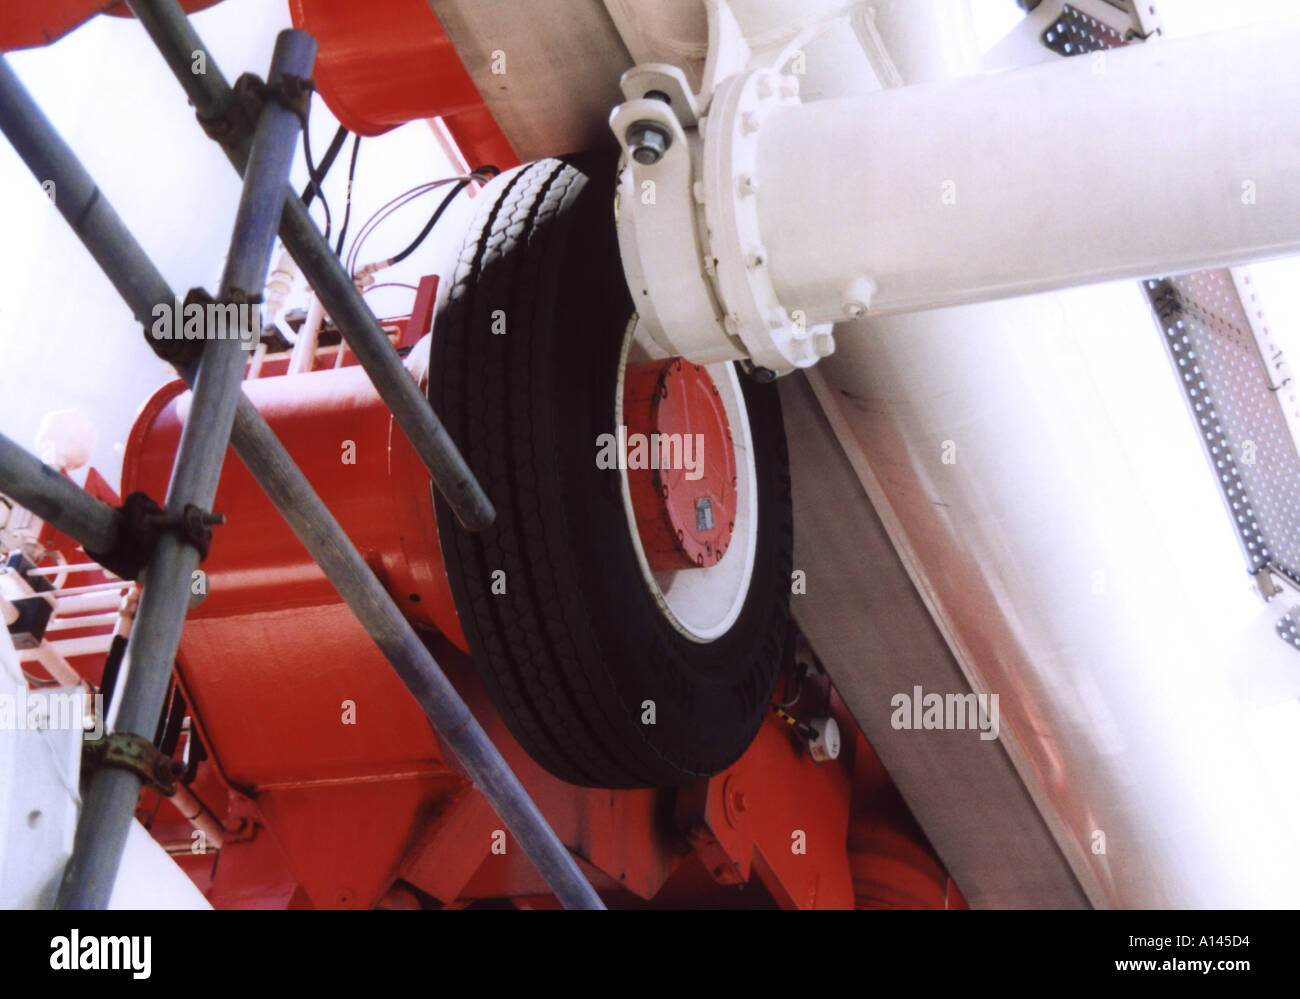 Tyre Propulsion System of The British Airways London Eye, England, United Kingdom - Stock Image